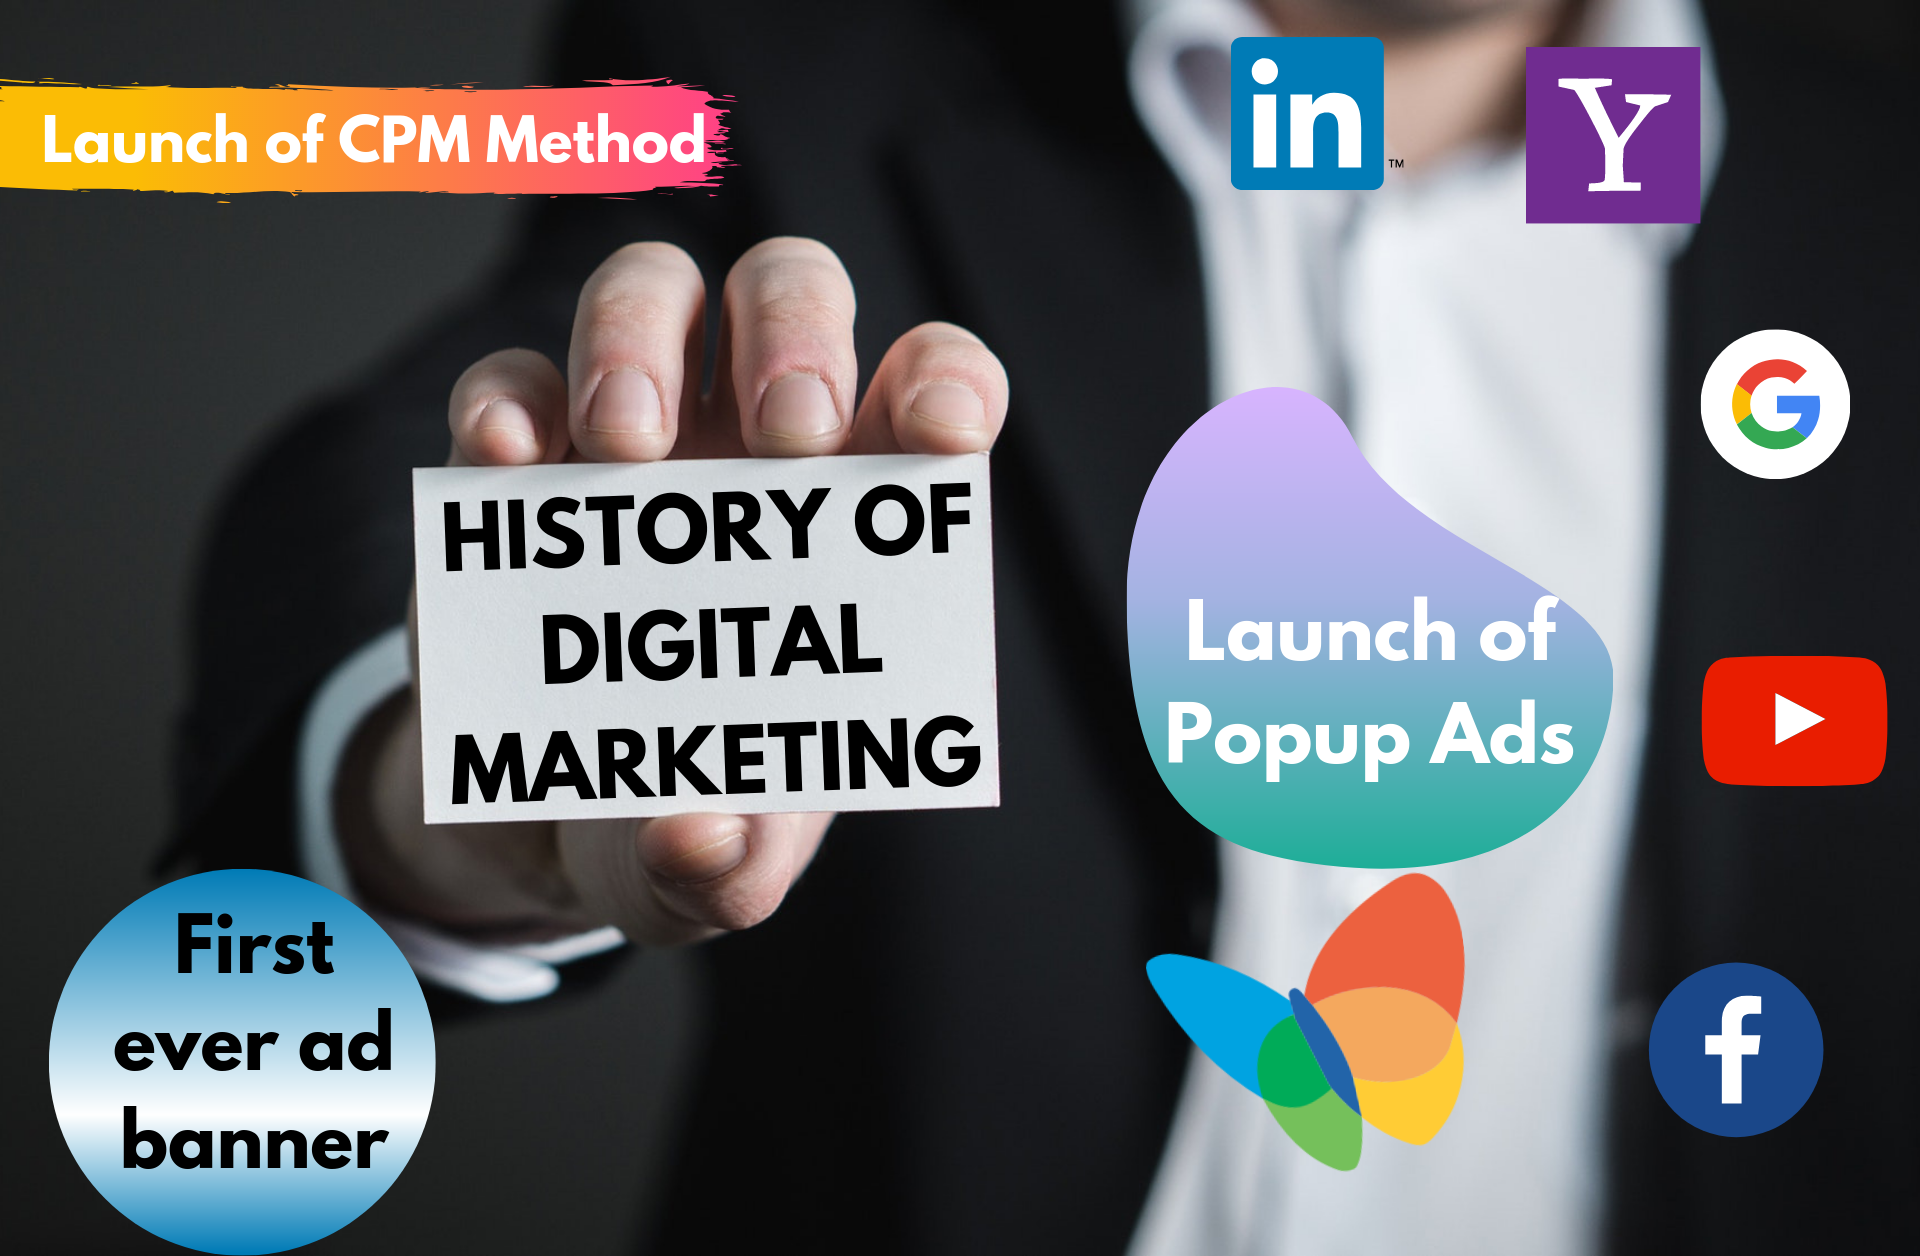 History of digital marketing - Digital Marketing - Digiaaj